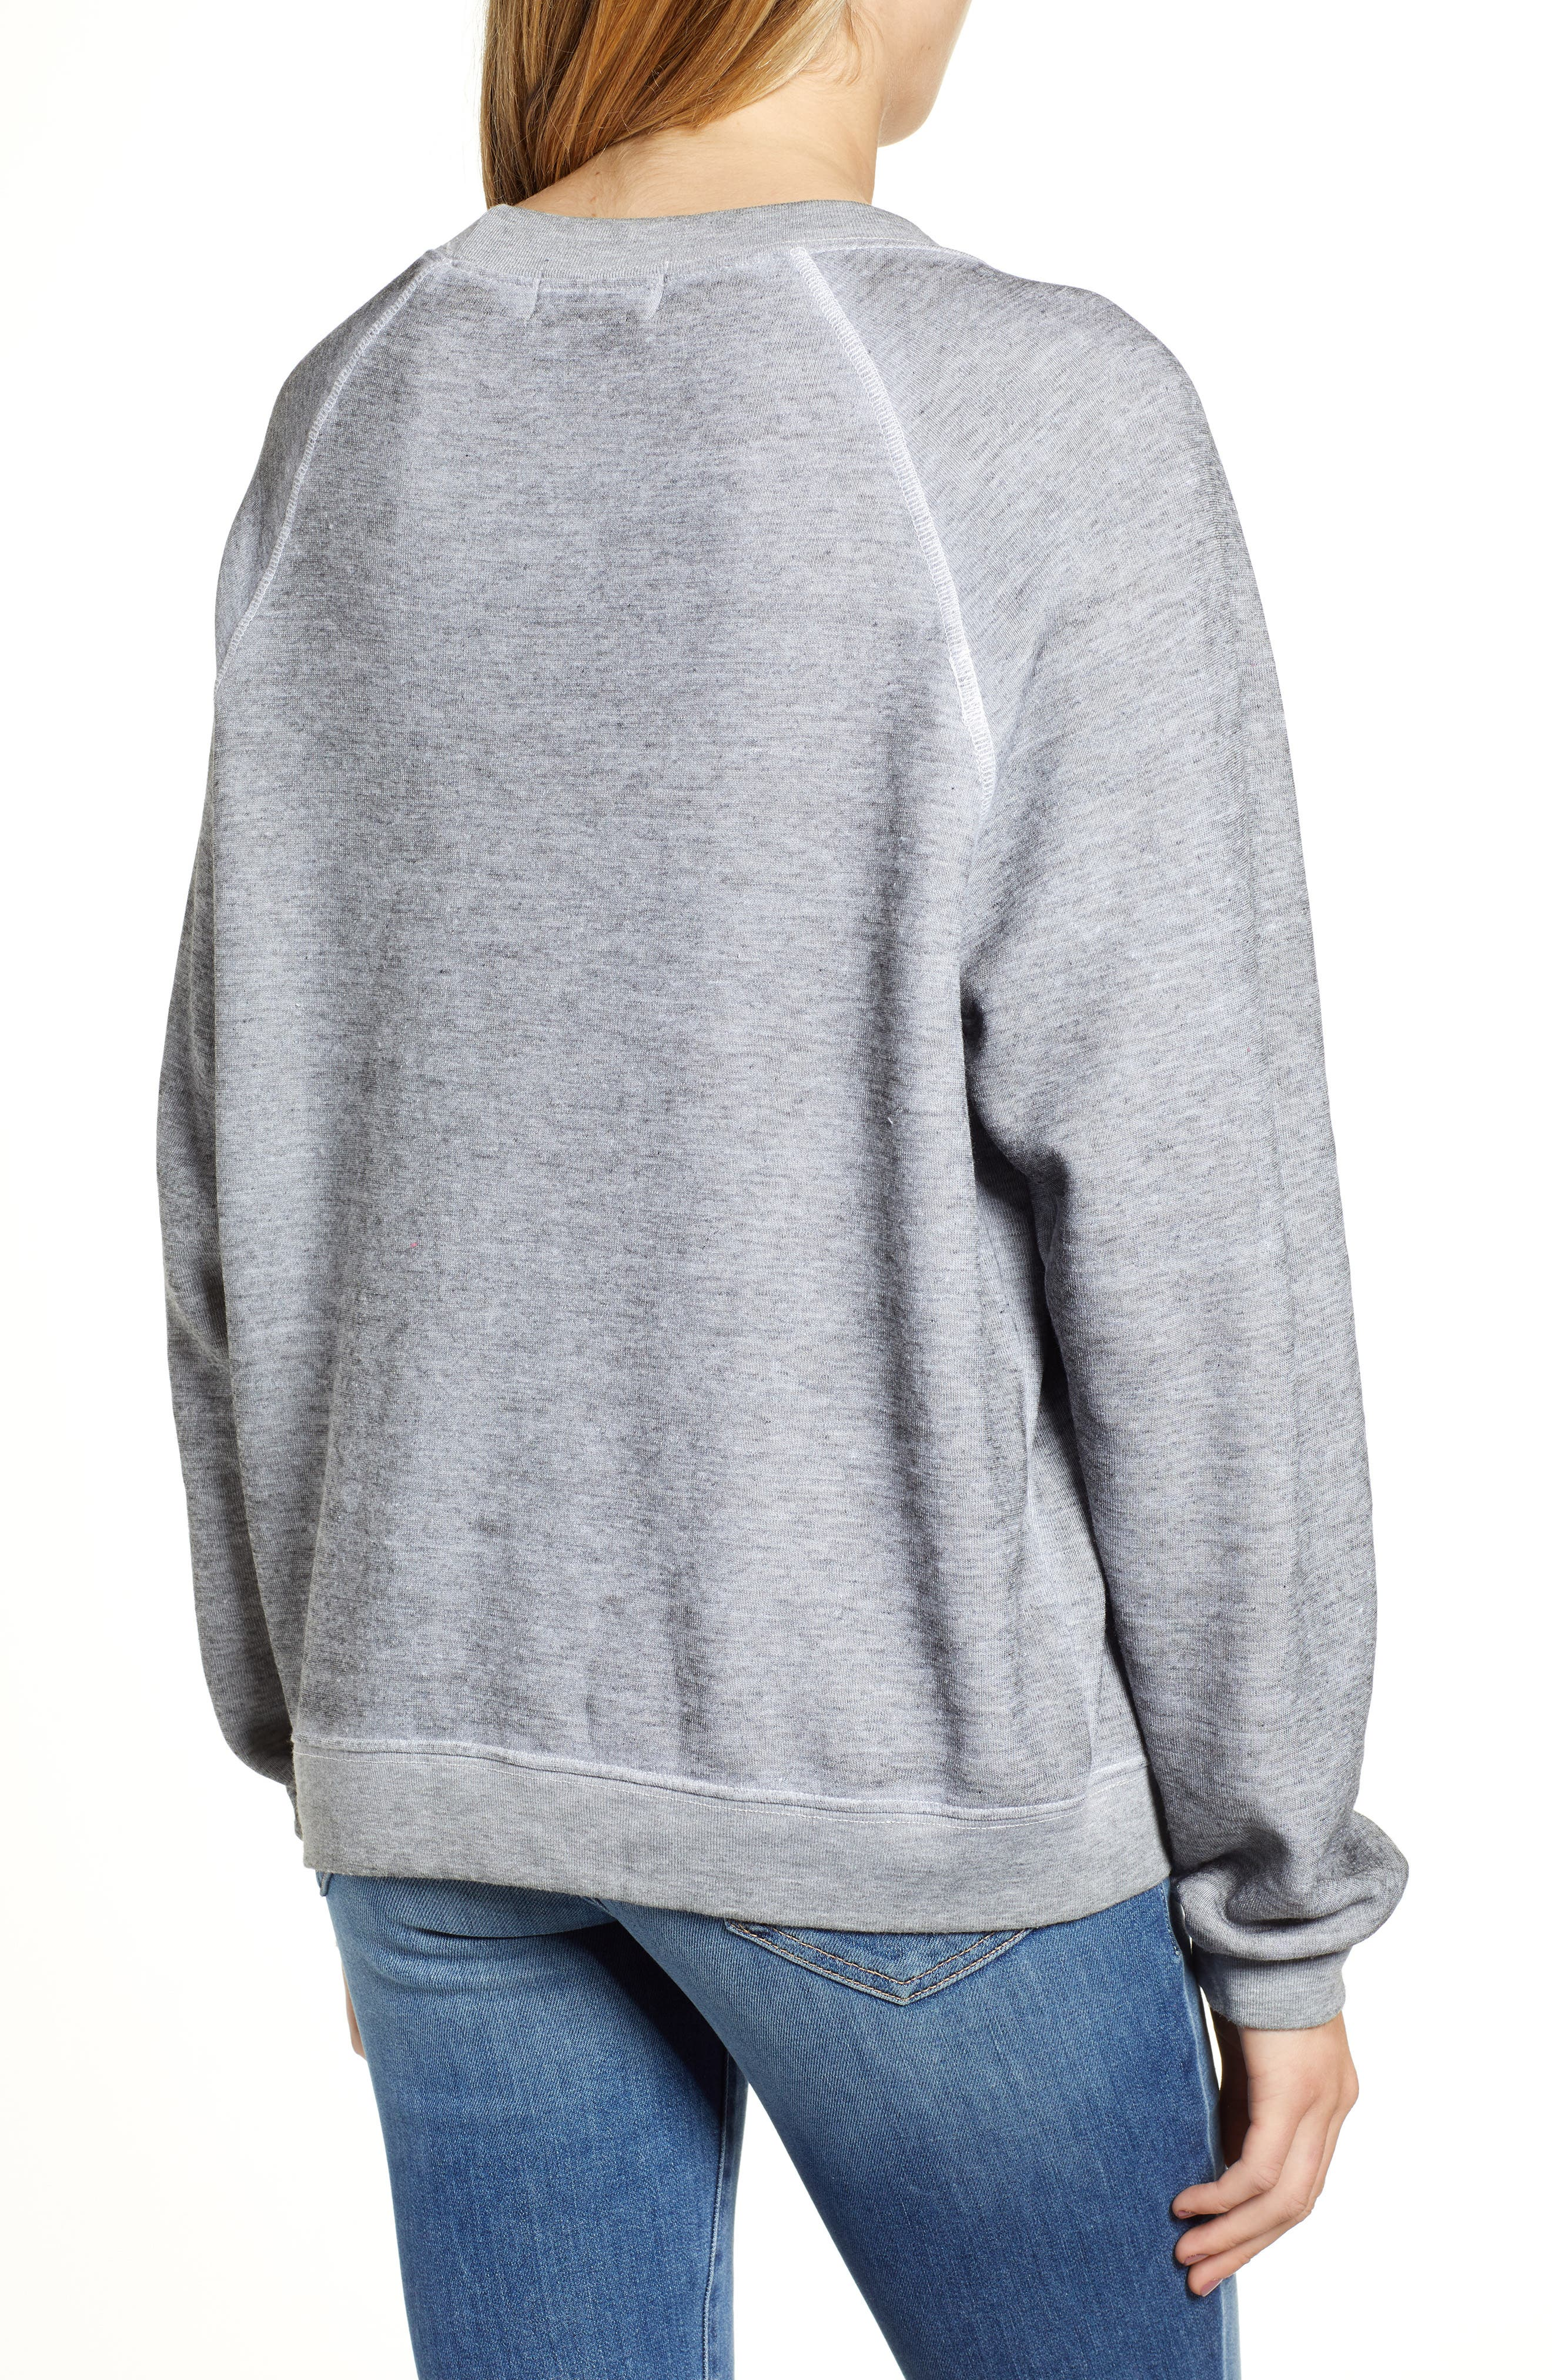 Pizzatarian Sommers Sweatshirt,                             Alternate thumbnail 2, color,                             HEATHER